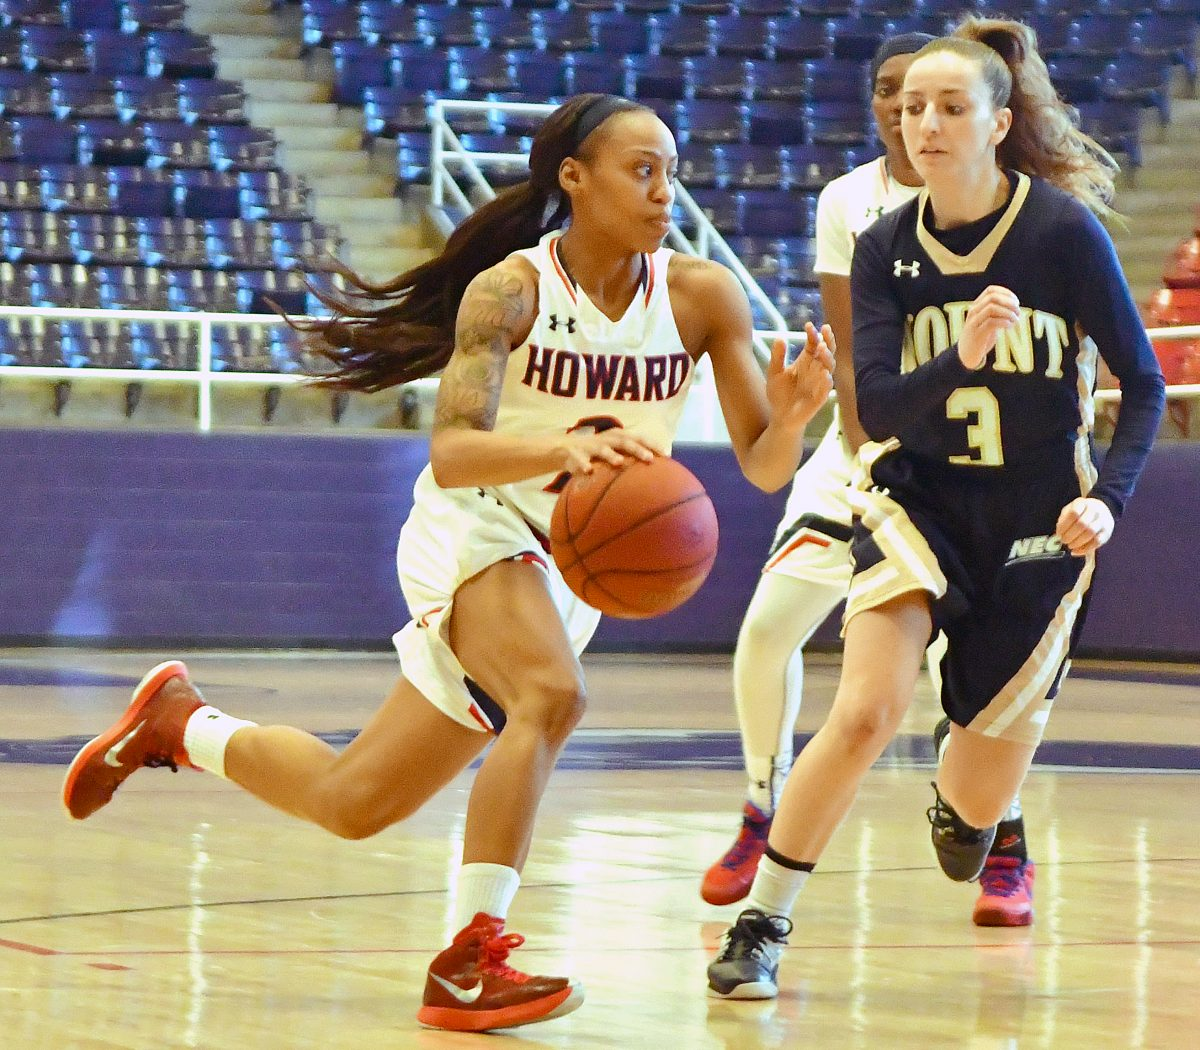 Howard Lady Bison guard Te'Shya Heslip drives past Mount St. Mary's Mountaineers guard Kathleen Belanger-Finn in the first quarter of Howard's 95-62 win at Burr Gymnasium in Northwest on Saturday, Dec. 10. /Photo by John E. De Freitas